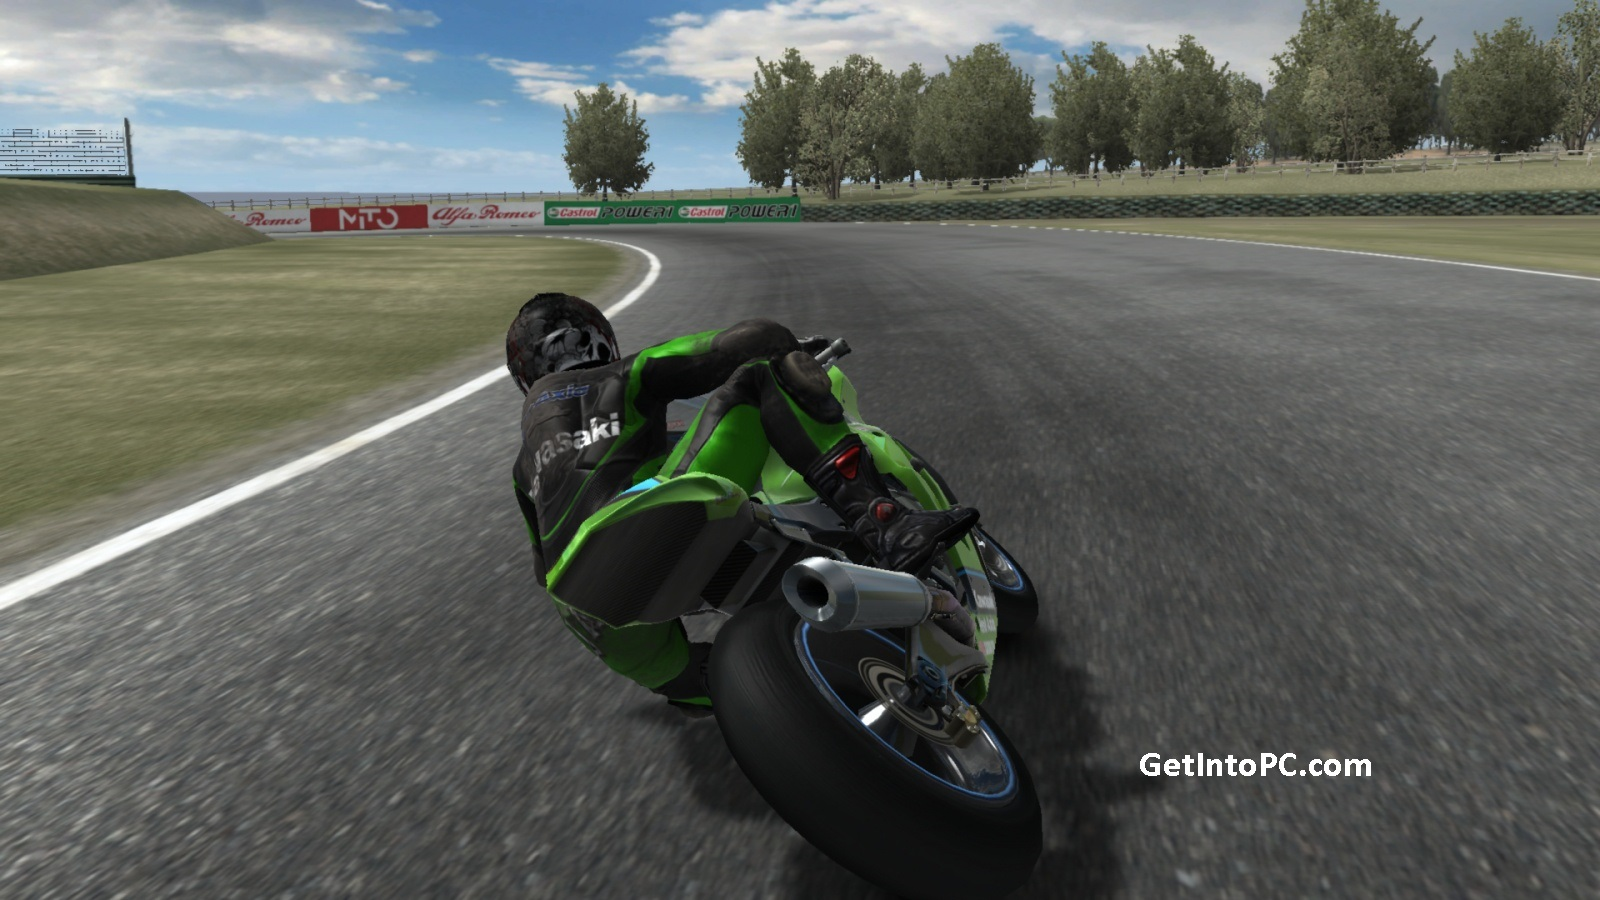 Bike Racing Games Free Download This Bike racing game has